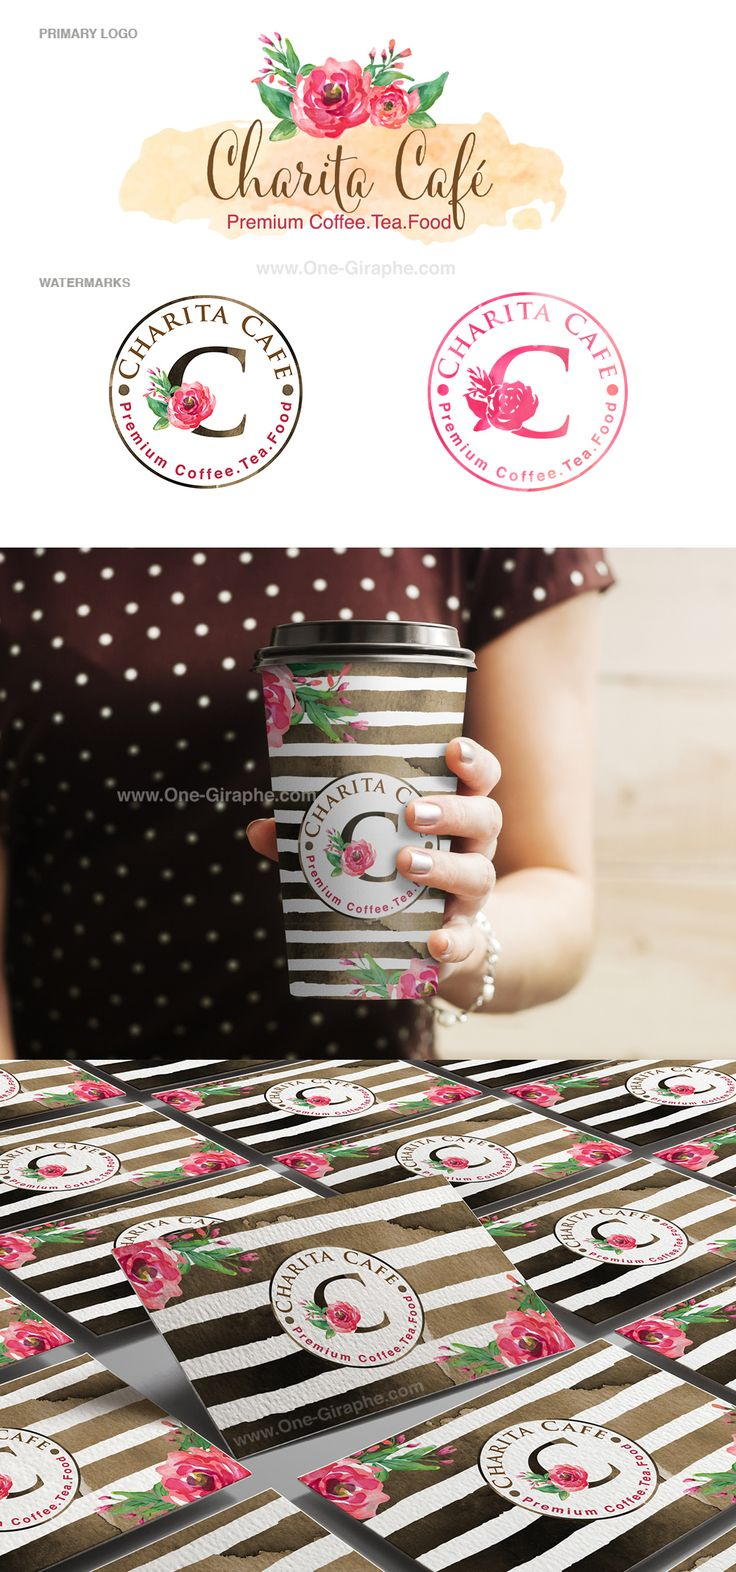 Coffee Shop - Portfolio www.One-Giraphe.com #branding #logo #coffee #coffeeshop #stripe #watercolor #flowers